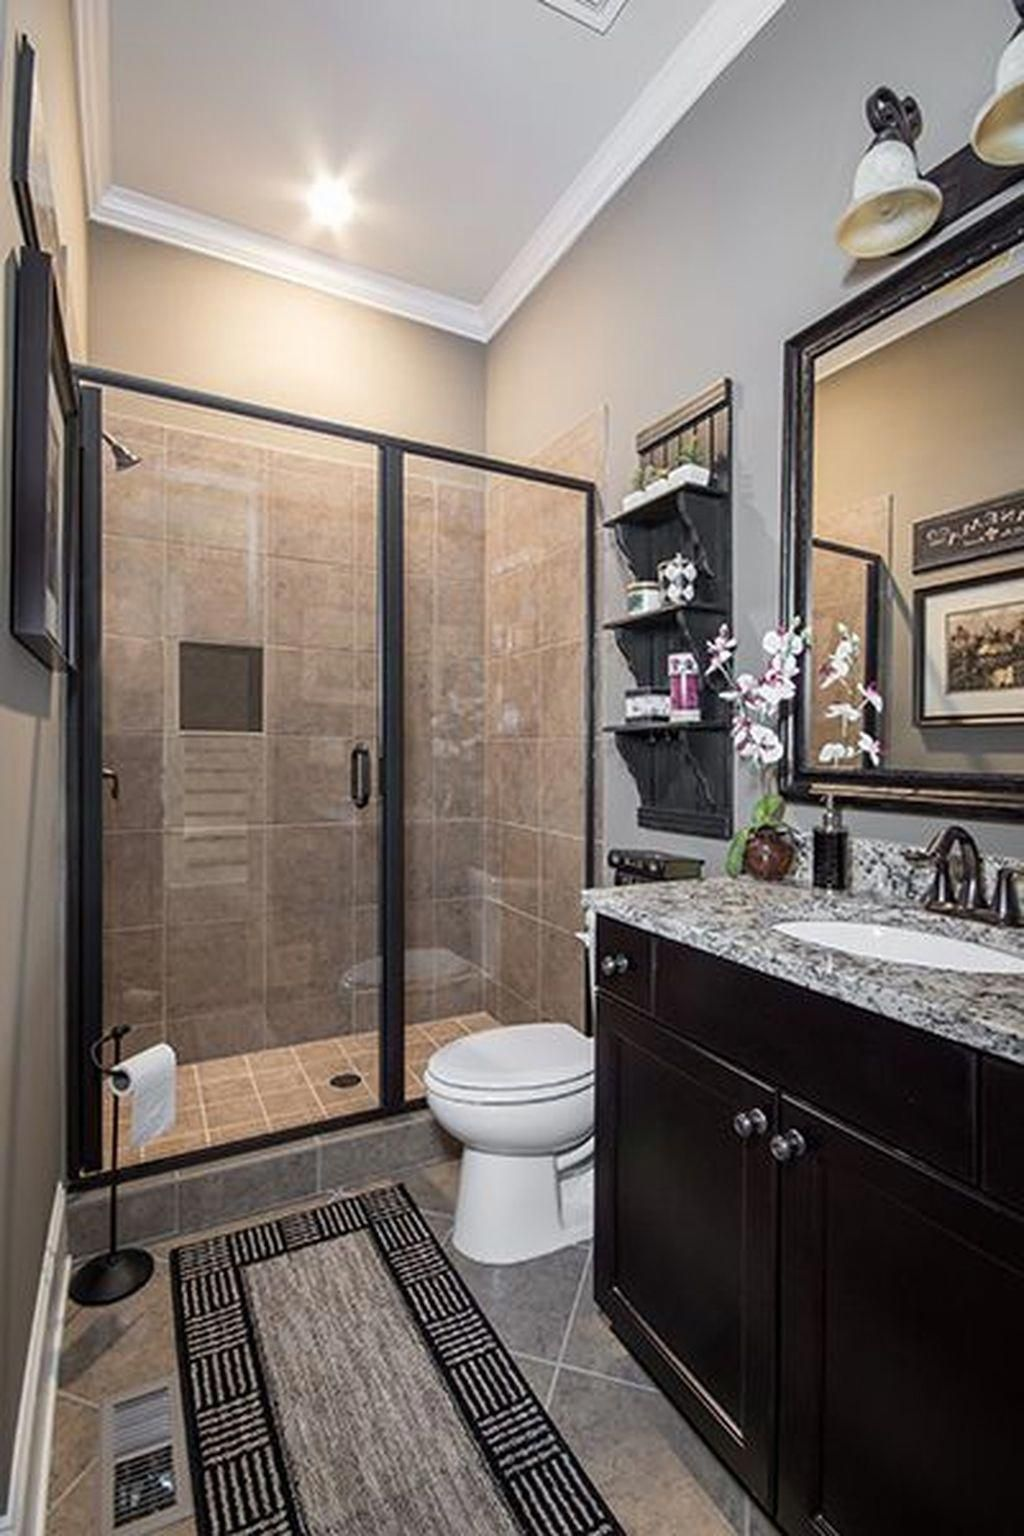 If You Re Only Repainting One Space Of Your House You Can Decide Out Of Working With Professional Painte Bathroom Design Small Bathrooms Remodel Small Remodel